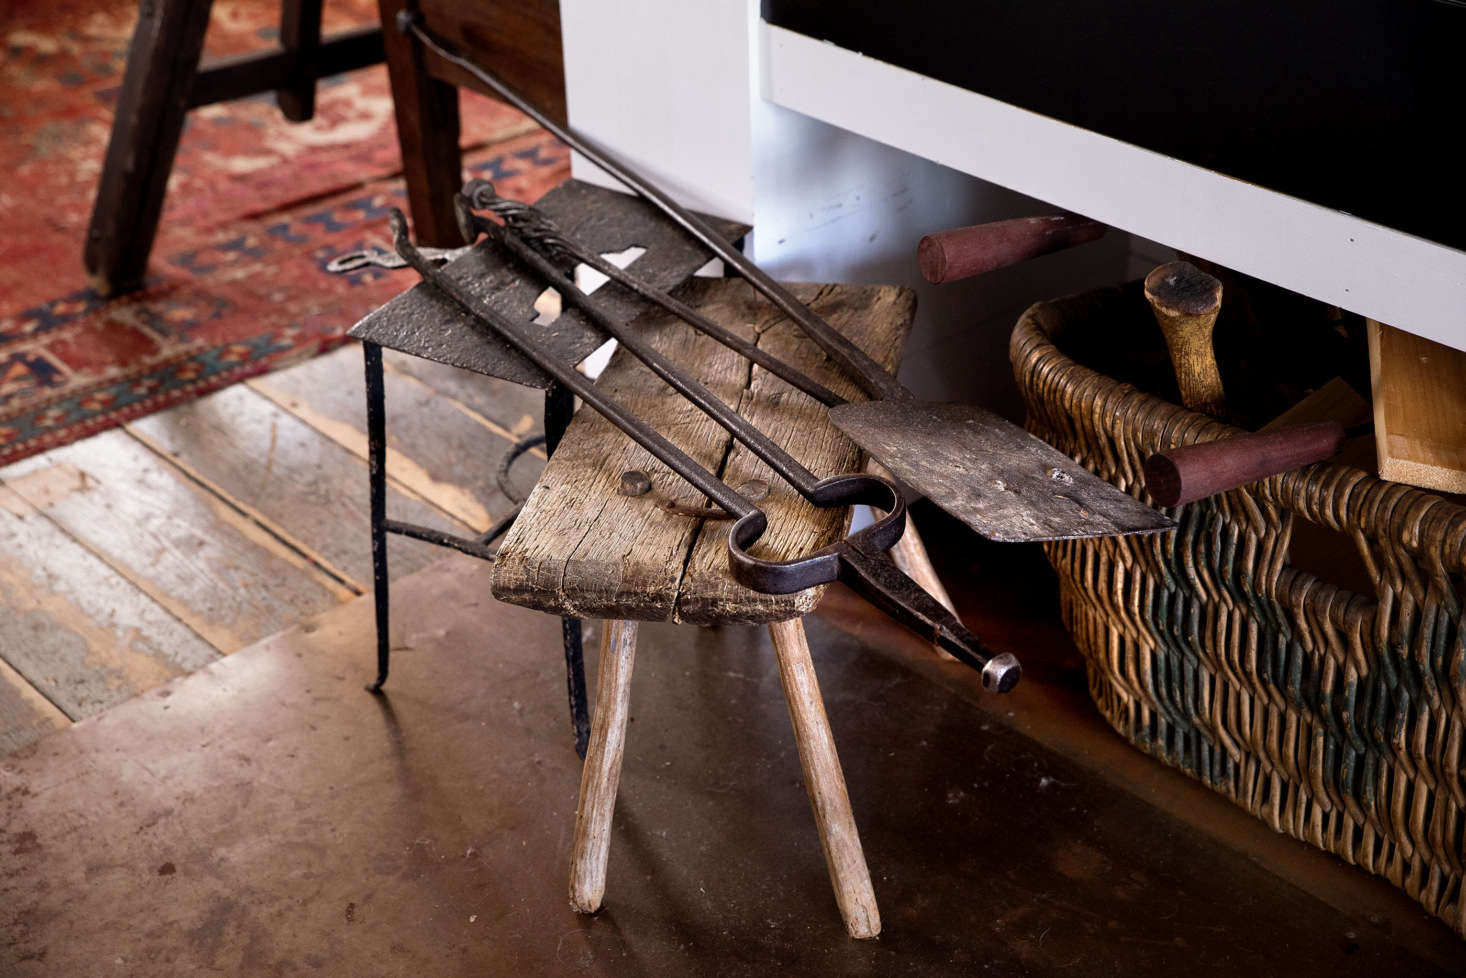 American fireplace tools from the 00s rest on iron standing trivet and an antique stool from Tuscany.